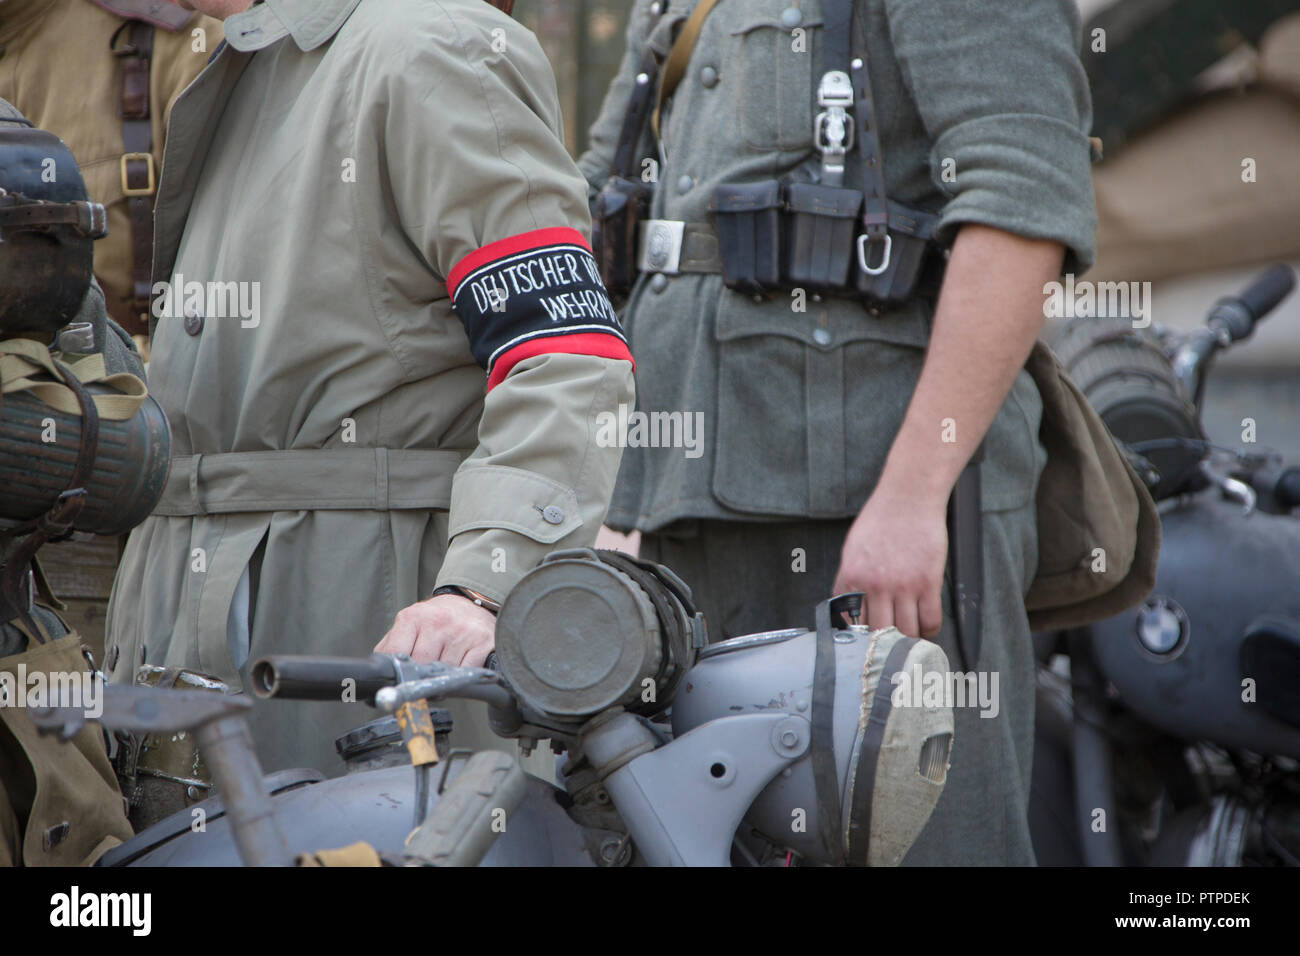 Belarus, Gomel. May 9, 2018. Victory Day. Historical reconstruction in 1945, capture of the Reichstag.People in German uniform of the Second World War - Stock Image